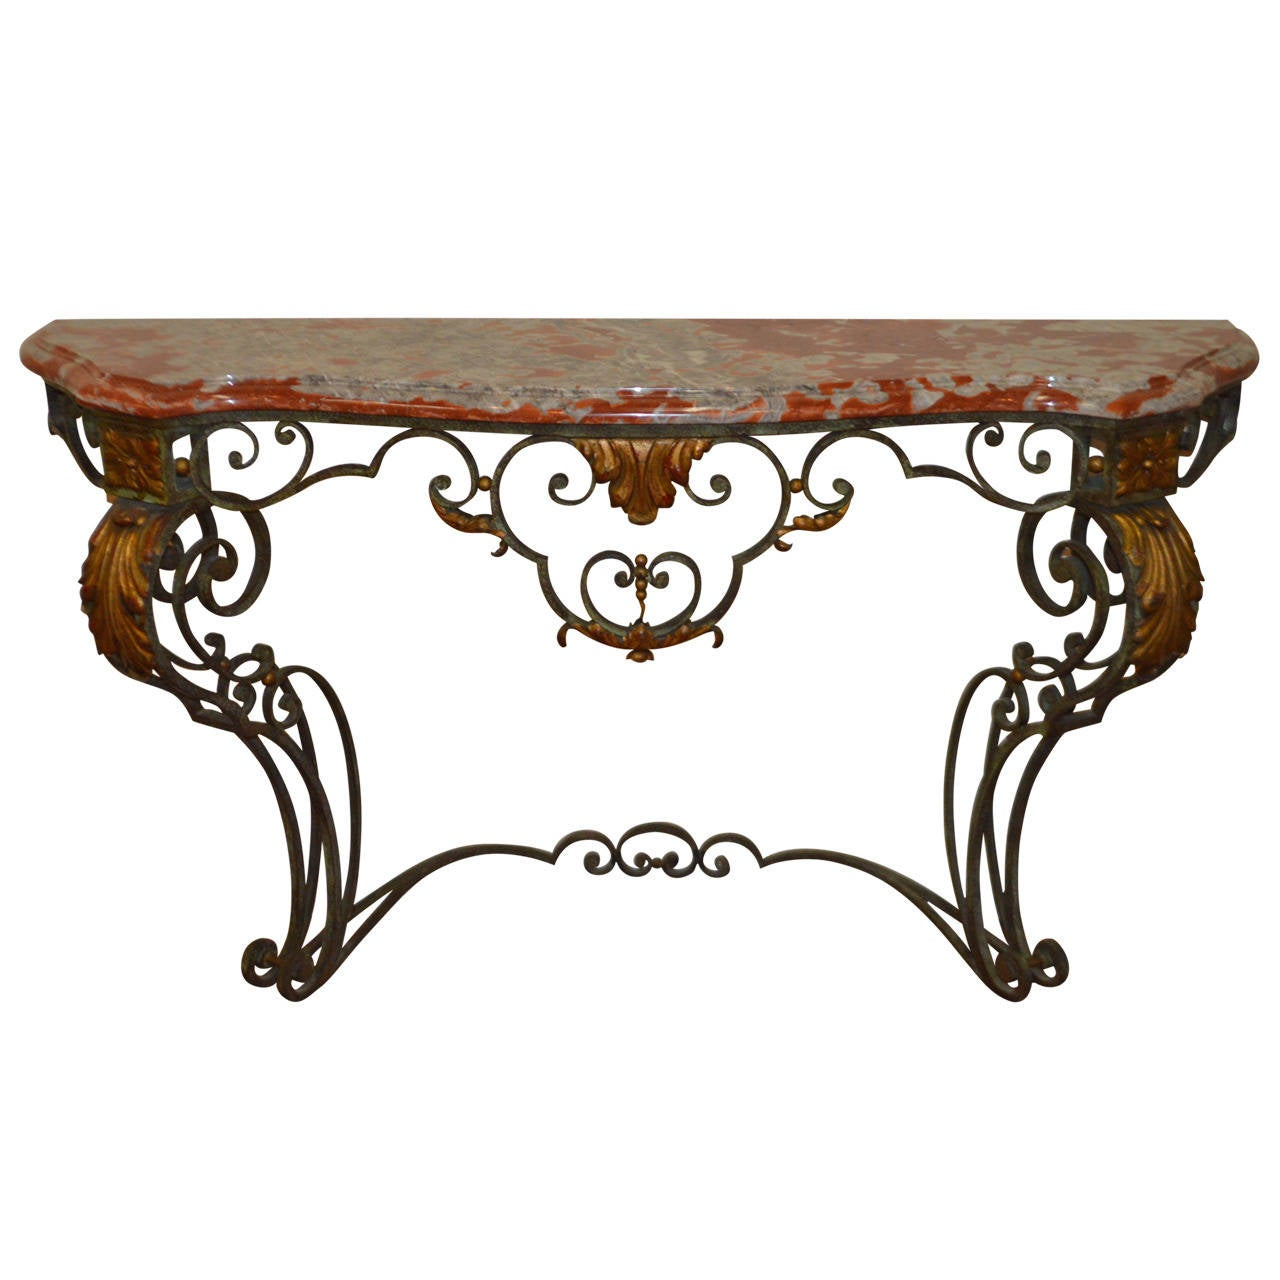 Wrought iron with marble top console table at 1stdibs for Wrought iron sofa table base